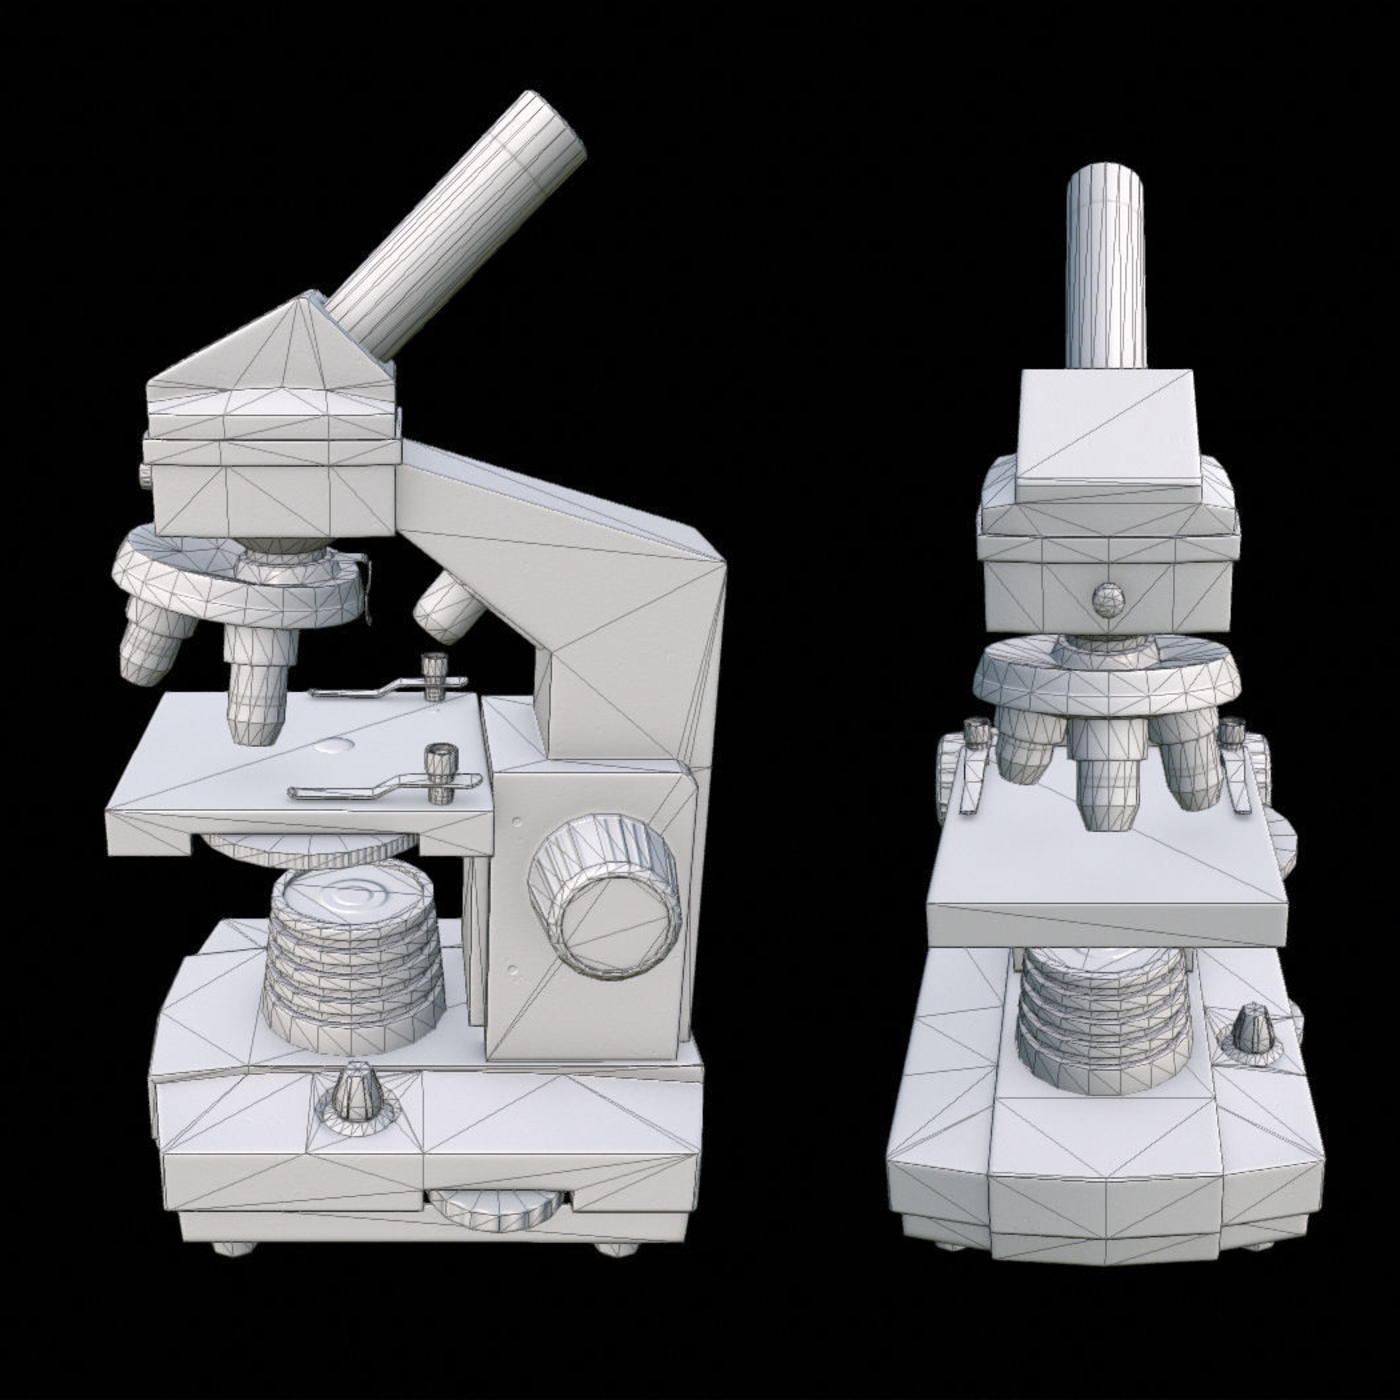 Microscope Low-poly 3D model